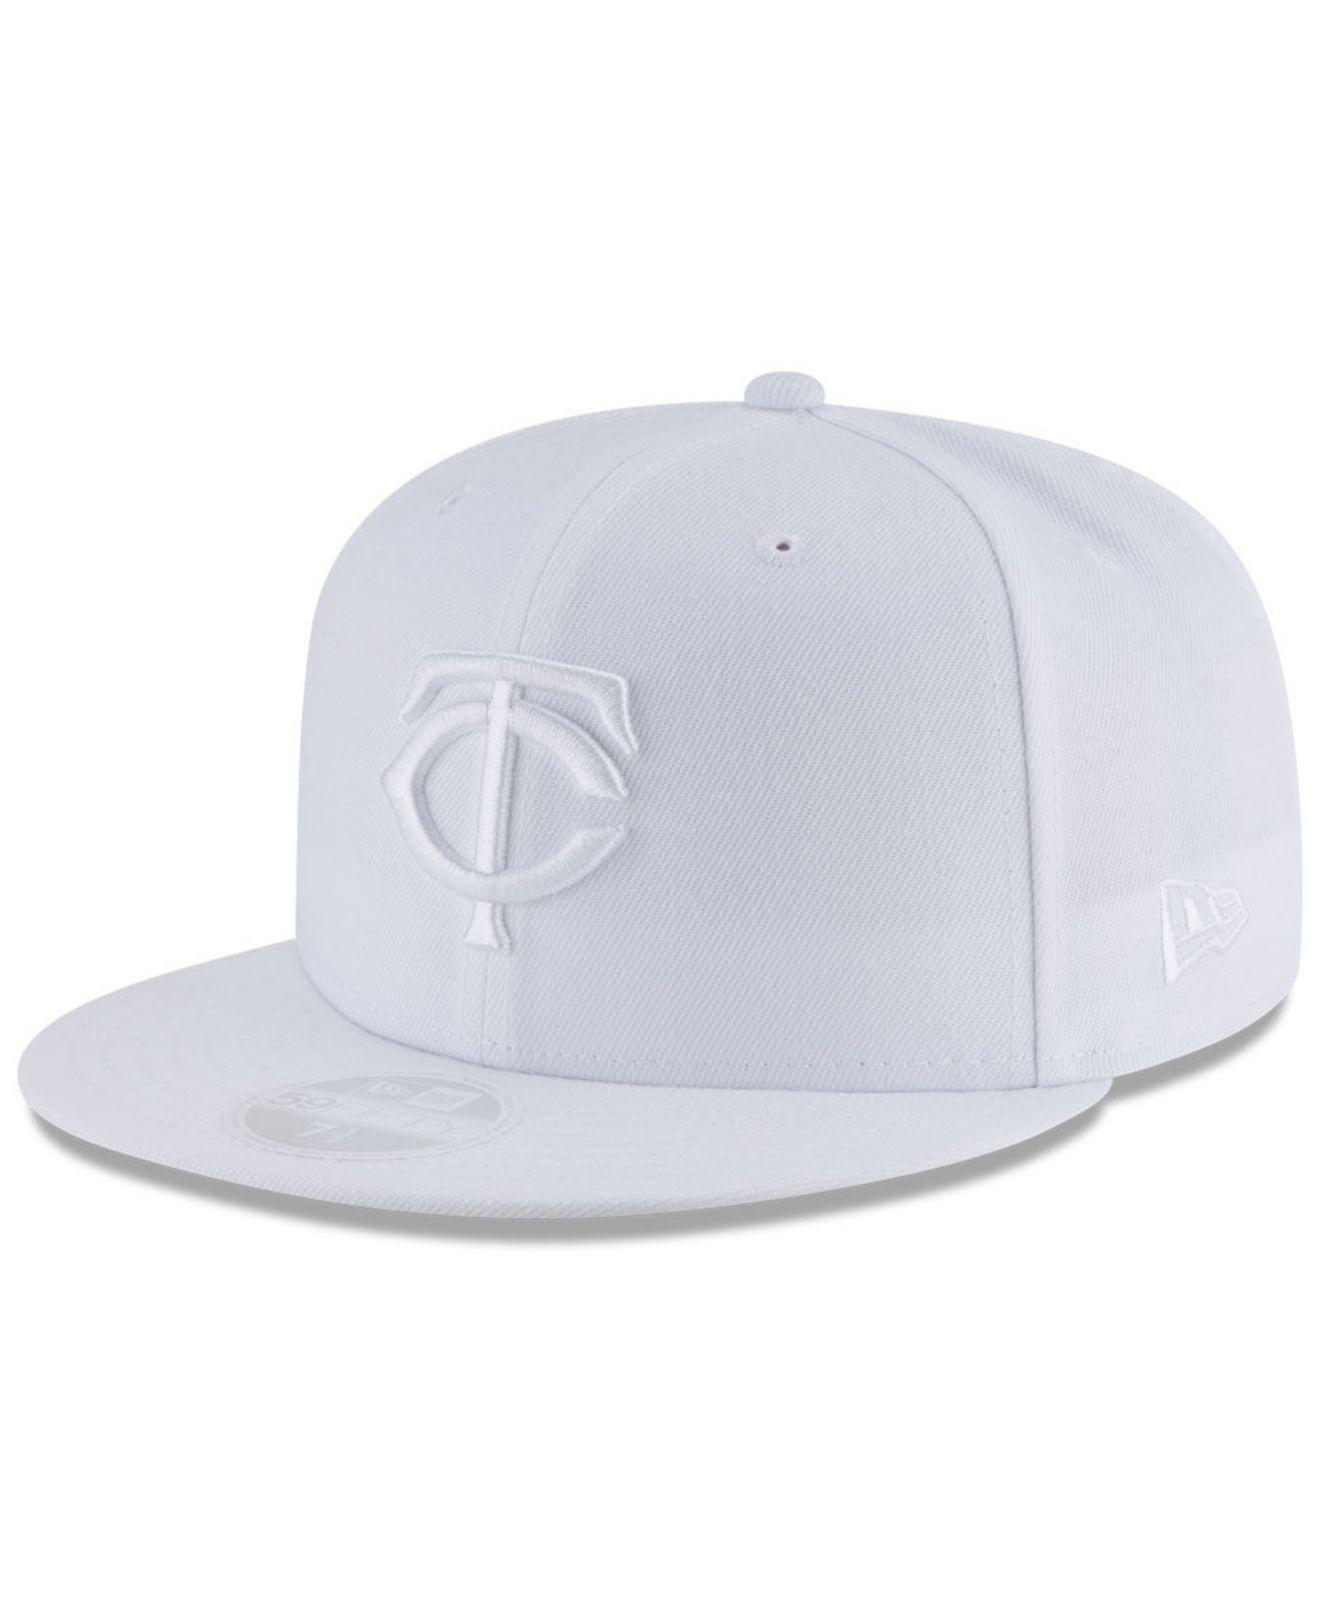 low priced 3691e f3e22 ... sale ktz minnesota twins white out 59fifty fitted cap for men lyst.  view fullscreen 4c070